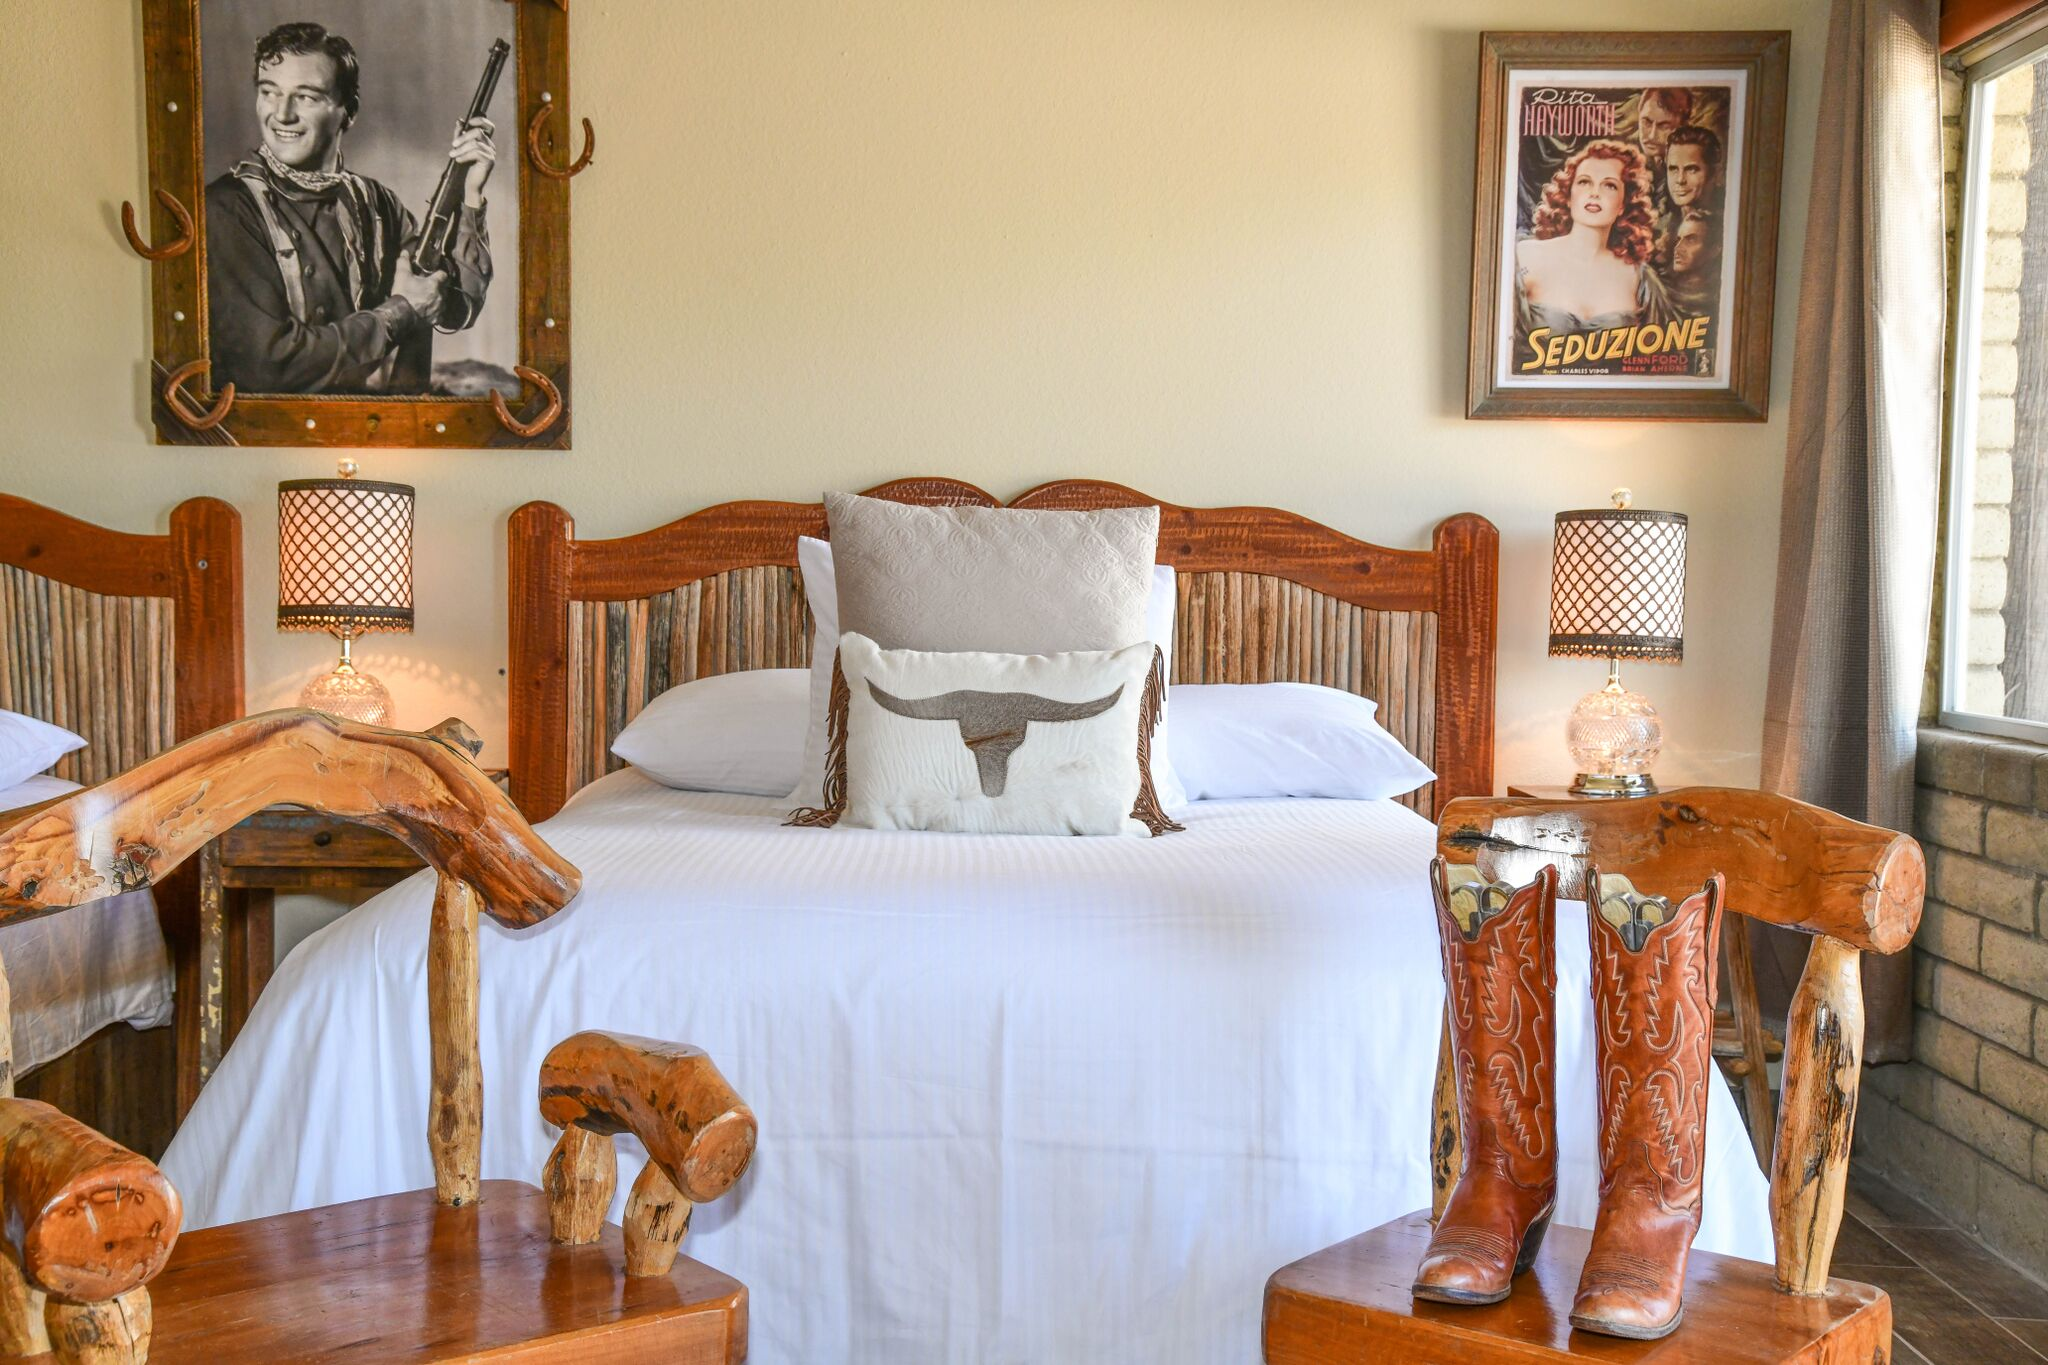 Experience Western Lodging at the Tumbleweed Hotel